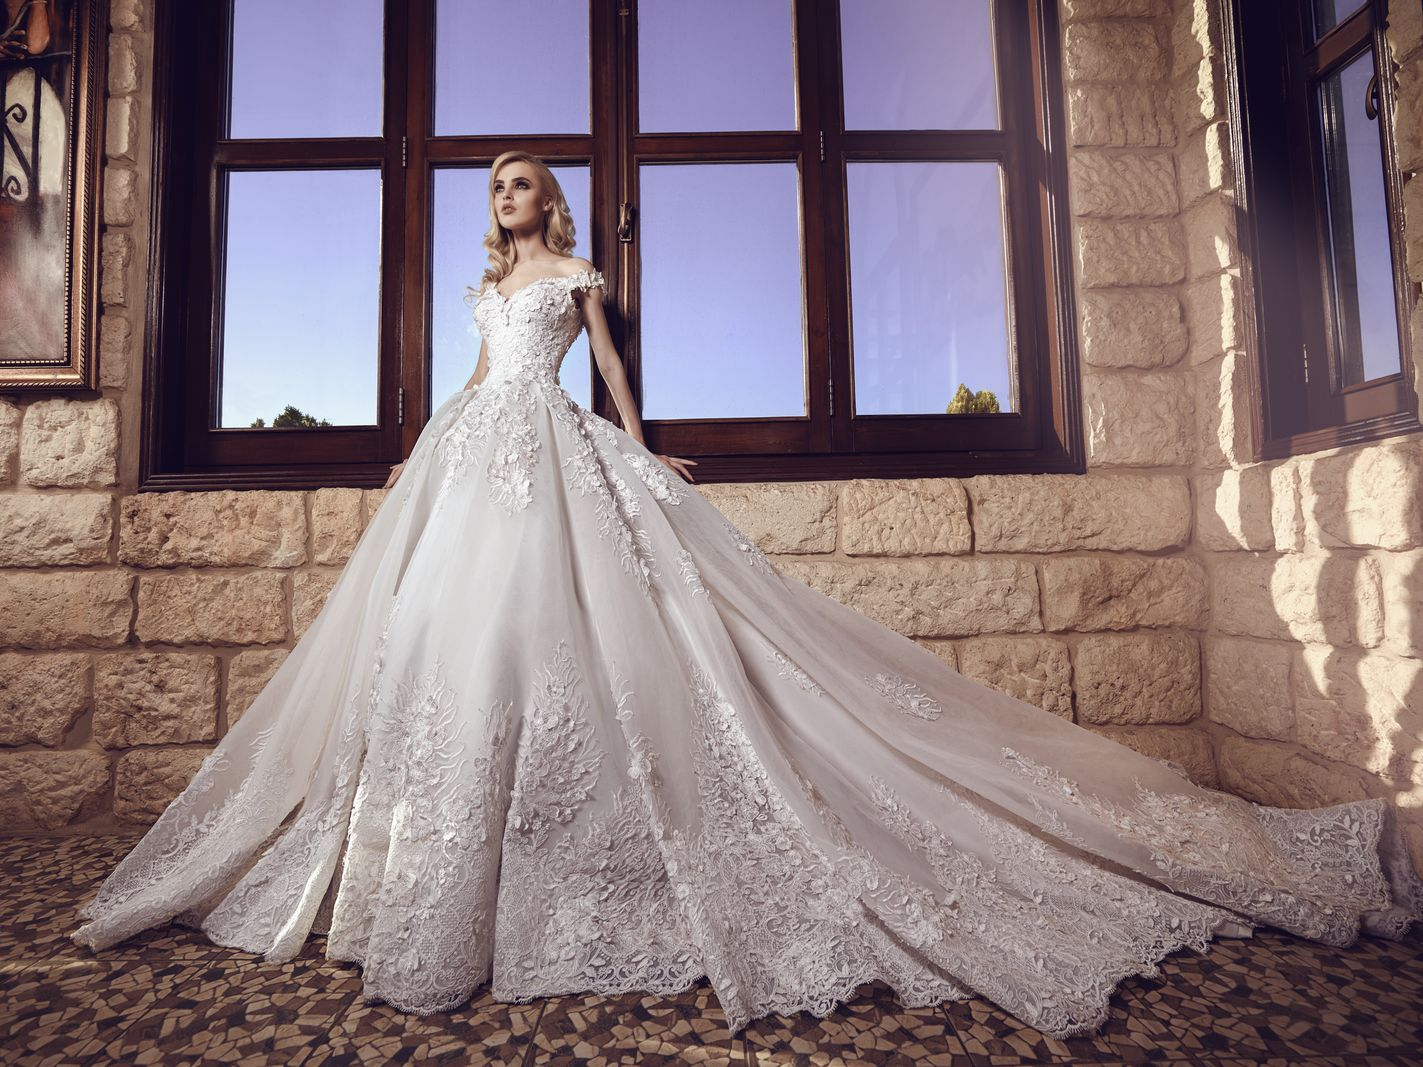 Wedding dresses I Bridal and bridesmaid gowns I Beirut - Lebanon